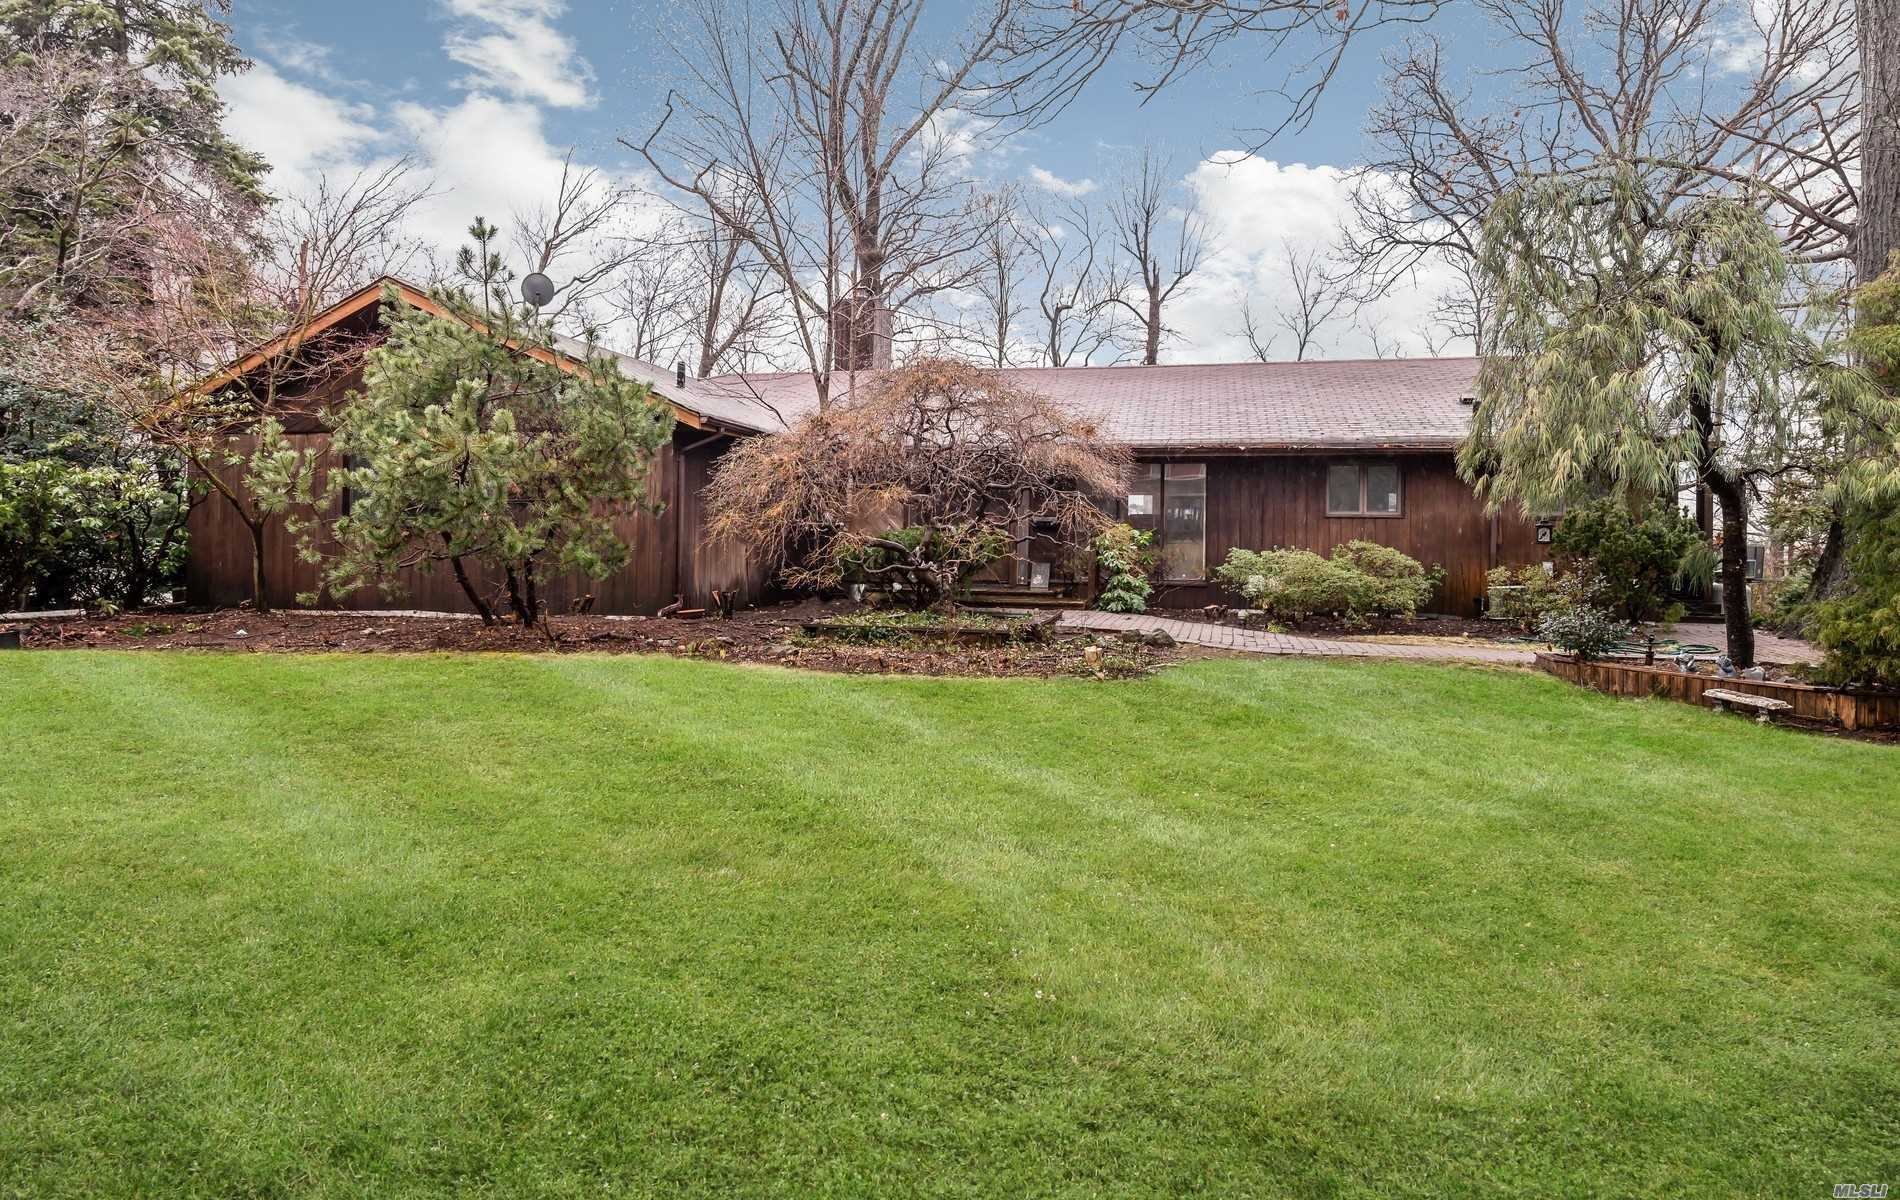 Bring your contractor and bring your imagination. Diamond in the rough. Tons of potential to turn this home into a show stopper. High ceilings, large rooms, lots of light, Living rm, FDR, den with stone fireplace, true Master Suite w/fpl, 3 add bedrooms, 2 bath, large lower level. Great Country Estates location. East Hills Park. Taxes are being Grieved.